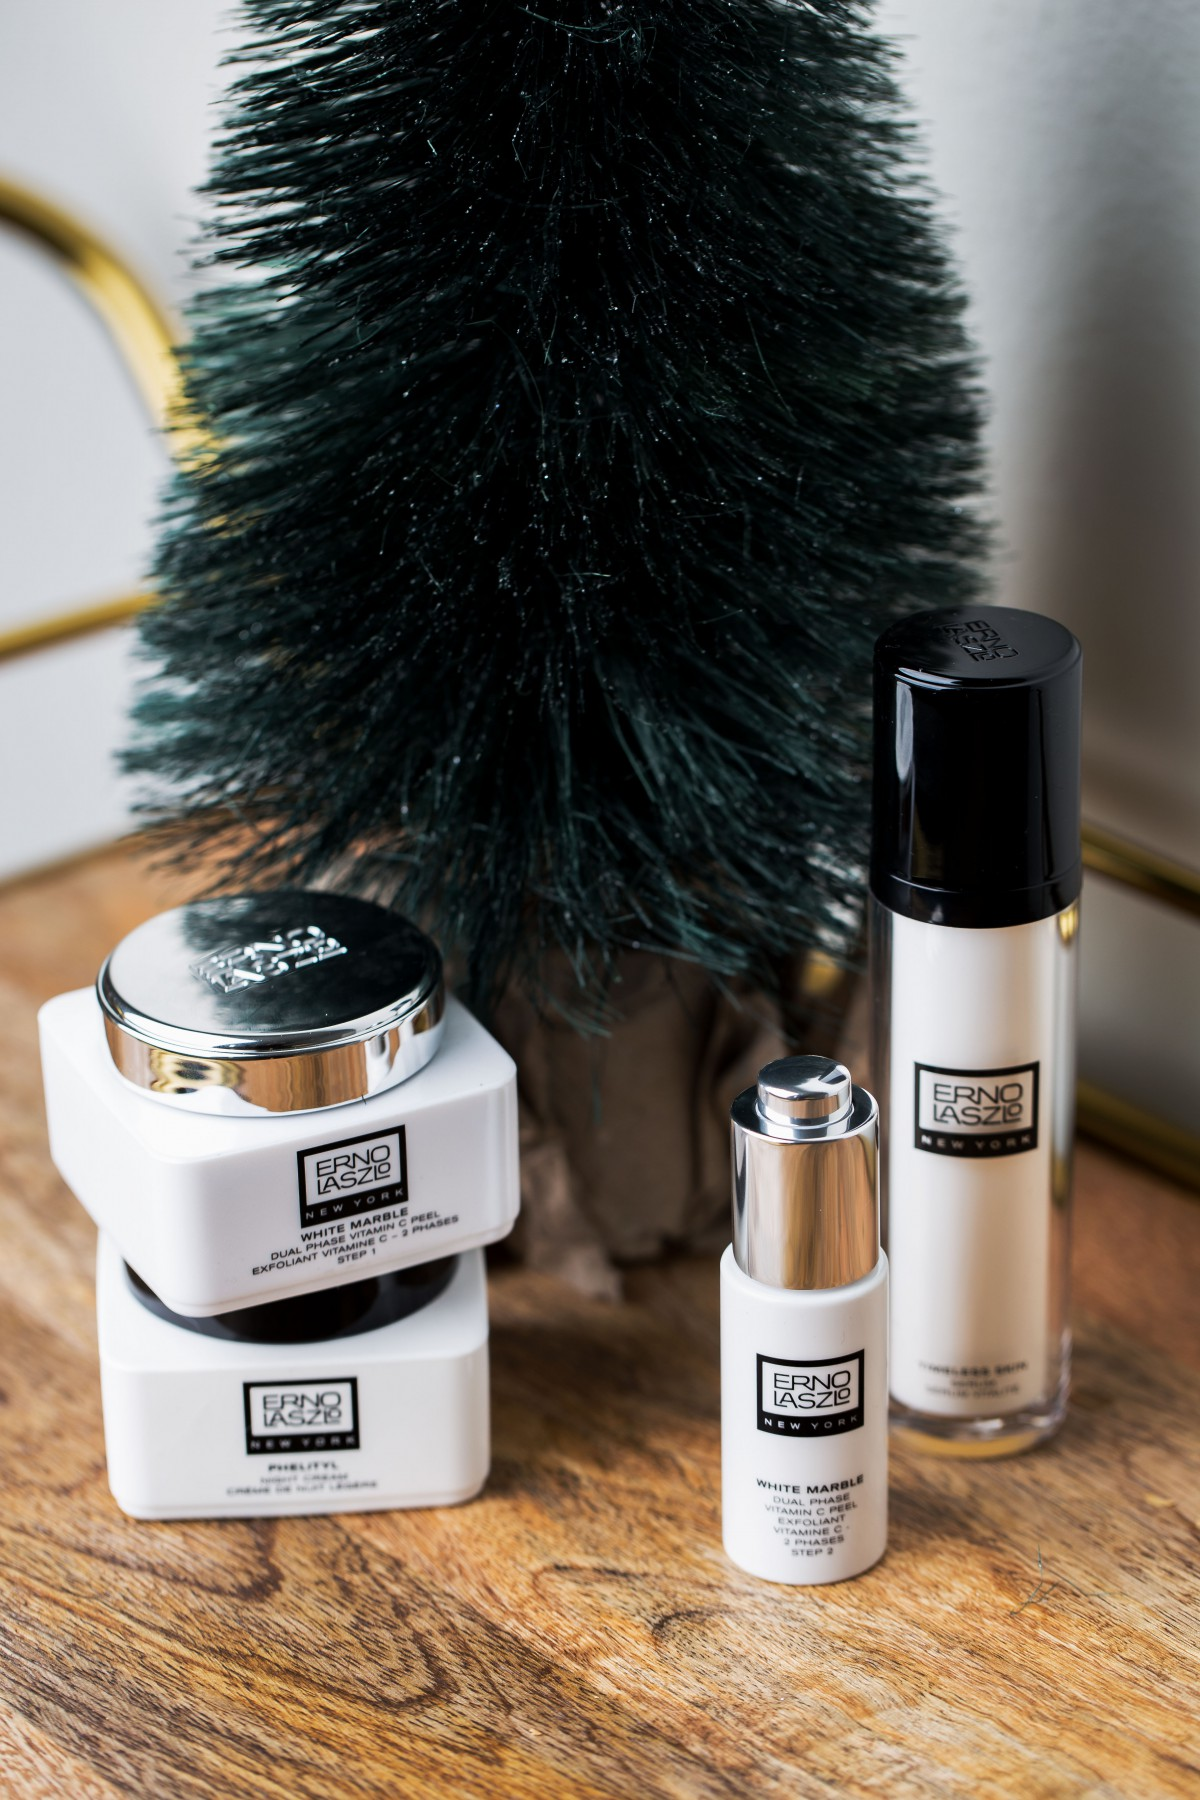 ERNO LASZLO GIVEAWAY | 12 DAYS OF GIVEAWAYS (DAY 6)